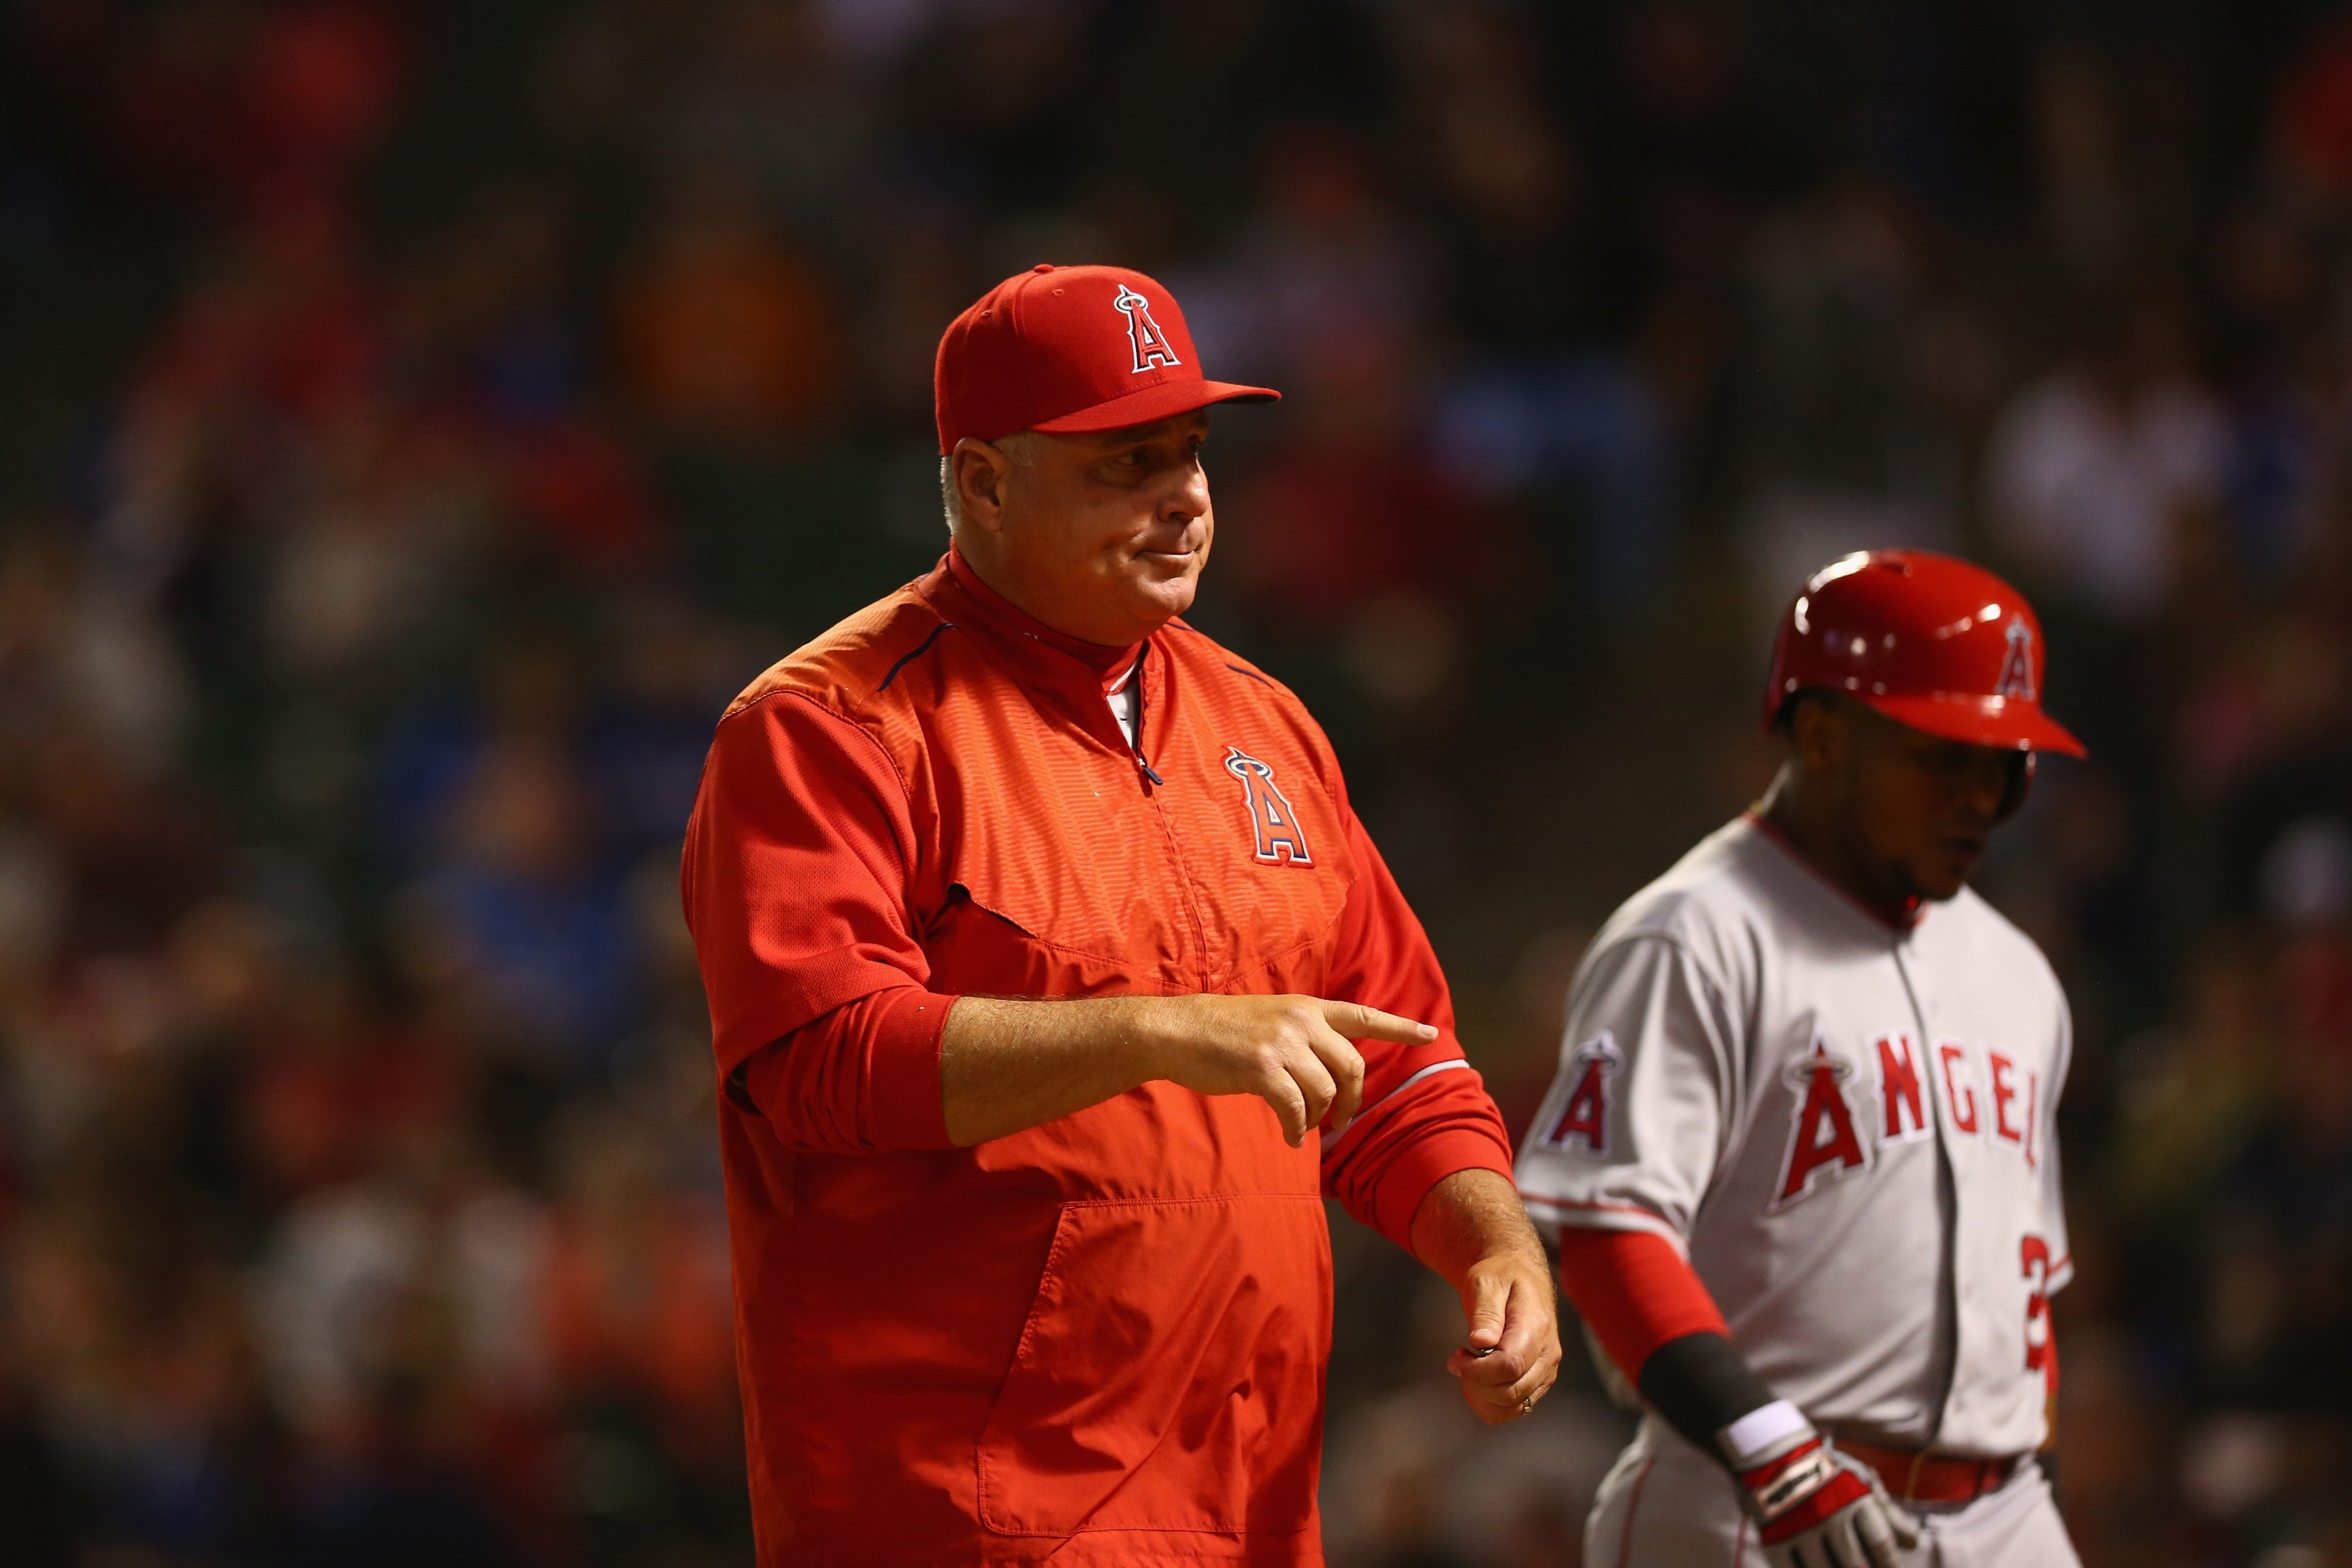 Angels manager Mike Scioscia said that no matter how someone ended up as a manager, it's wins and losses that will determine his fate.